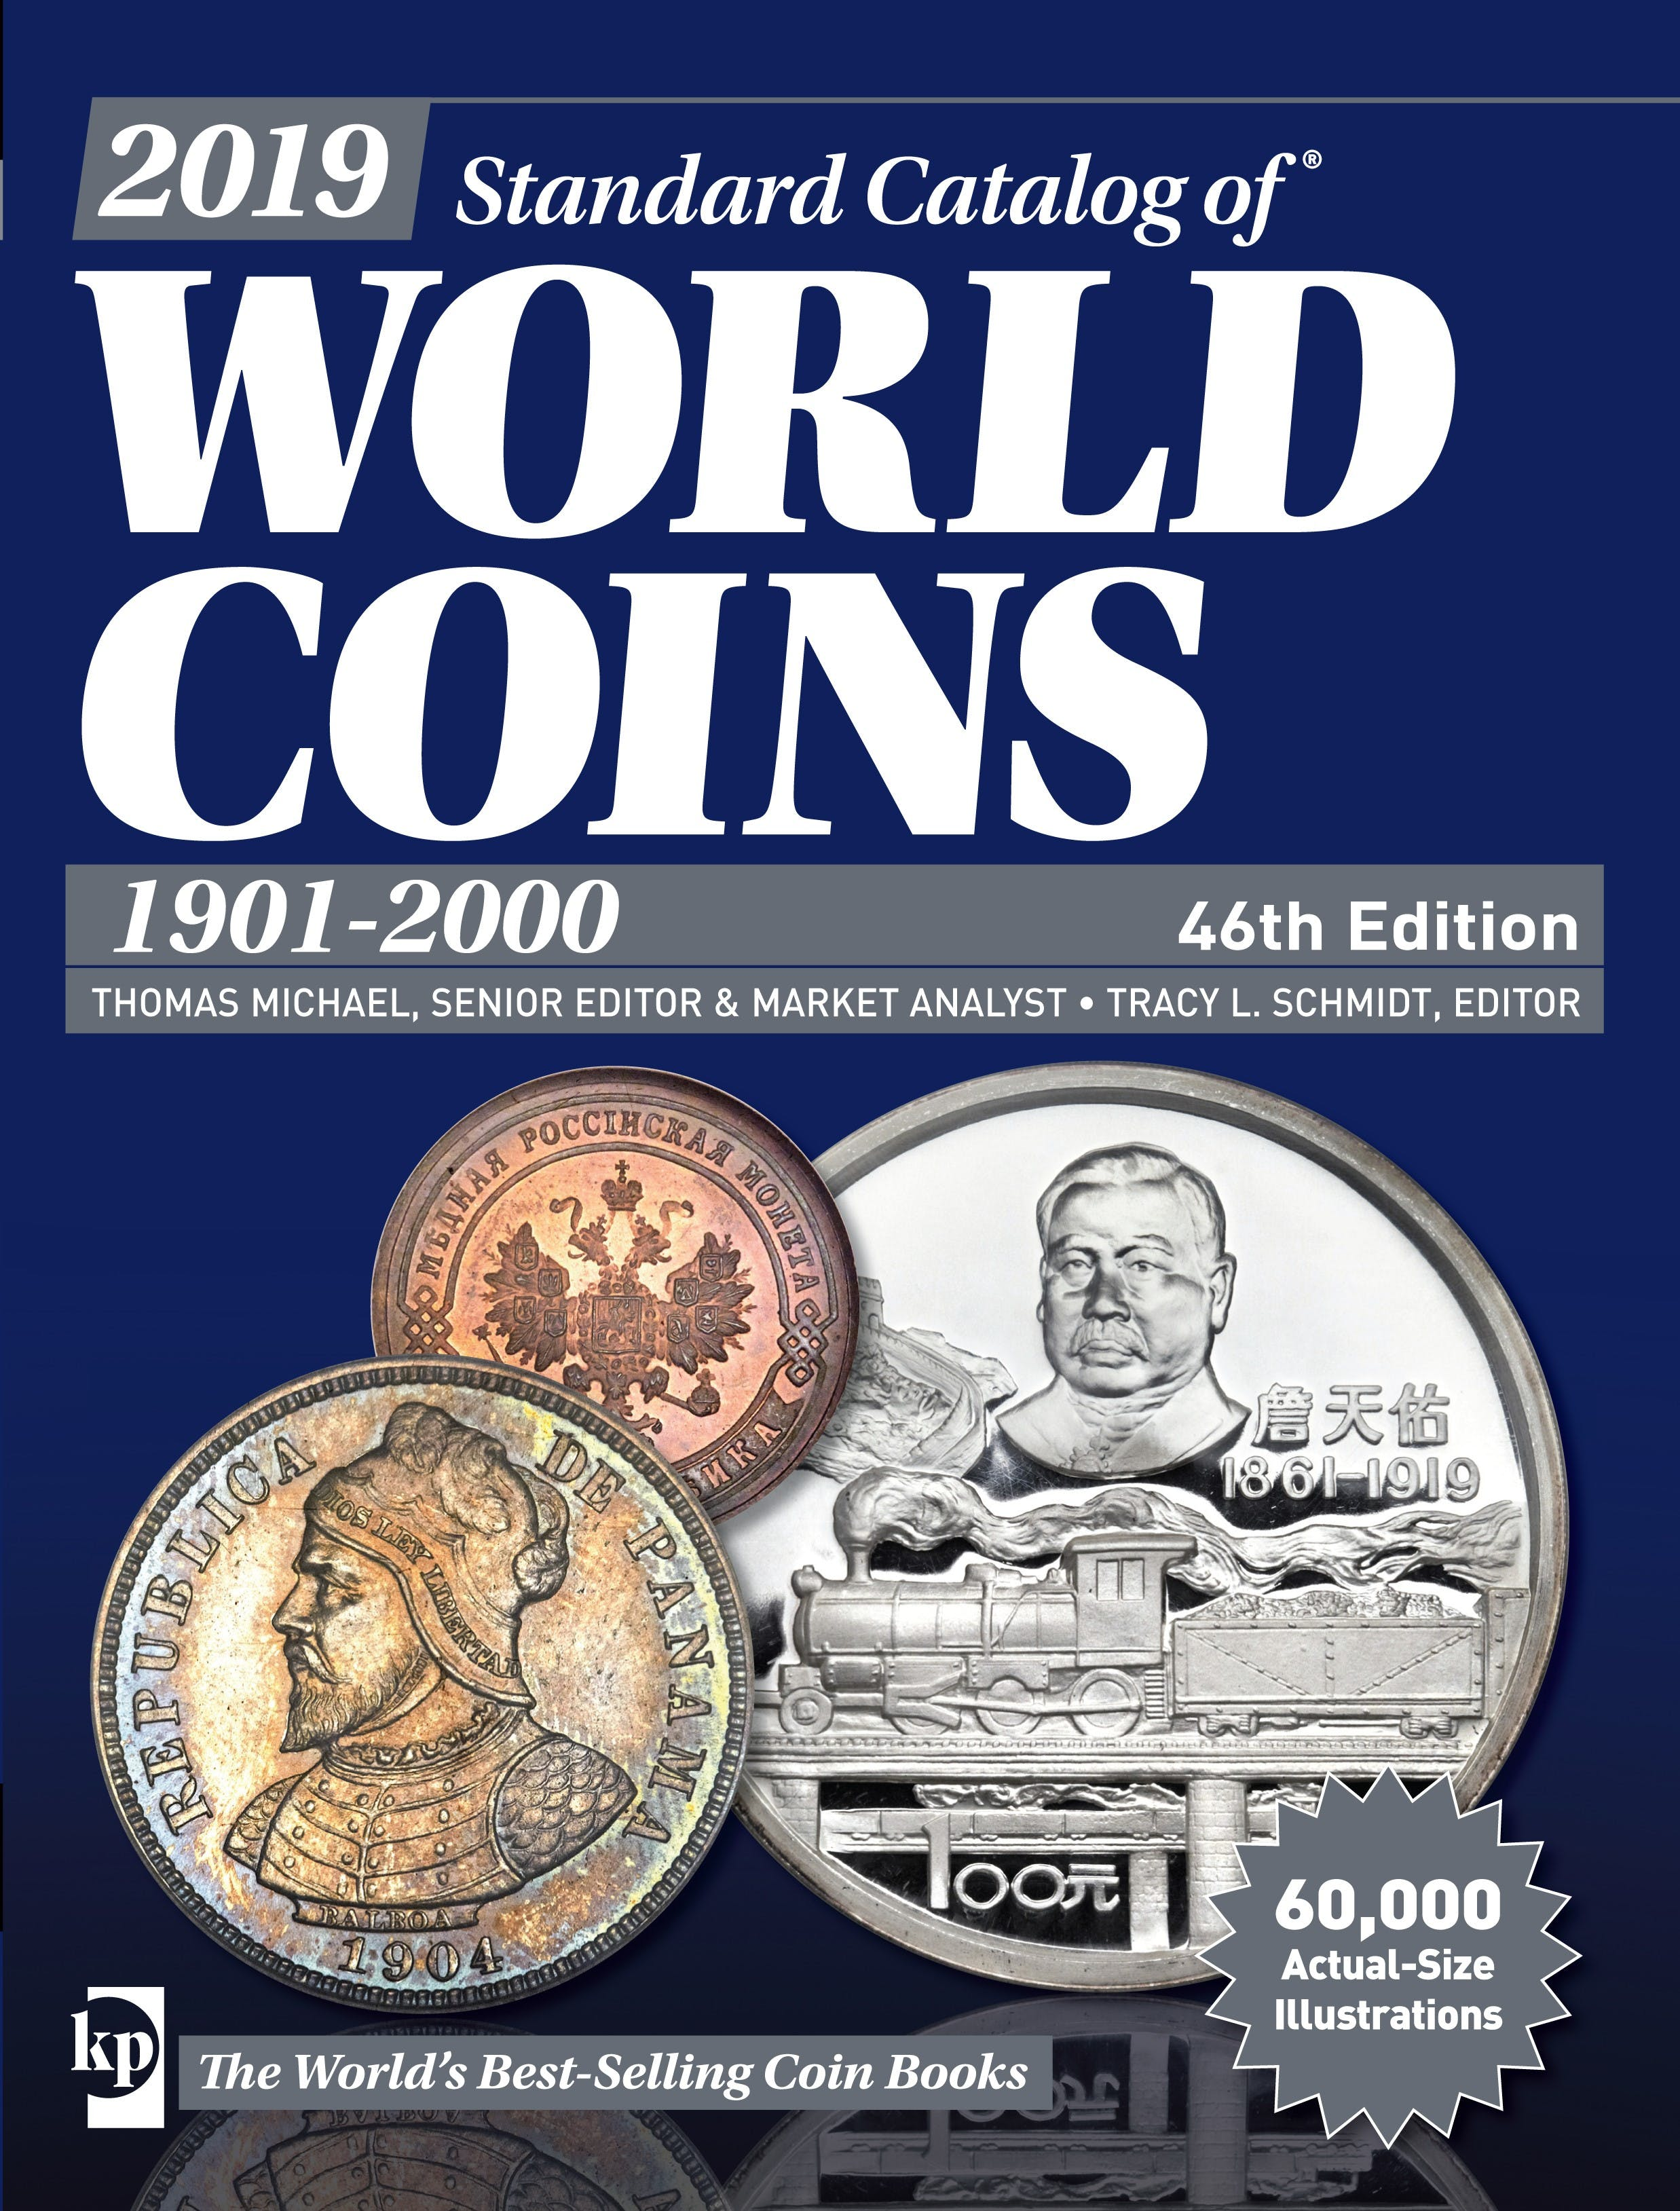 Krause Standard Catalog of World Coins 1901-2000 46th Edition in the Token Publishing Shop